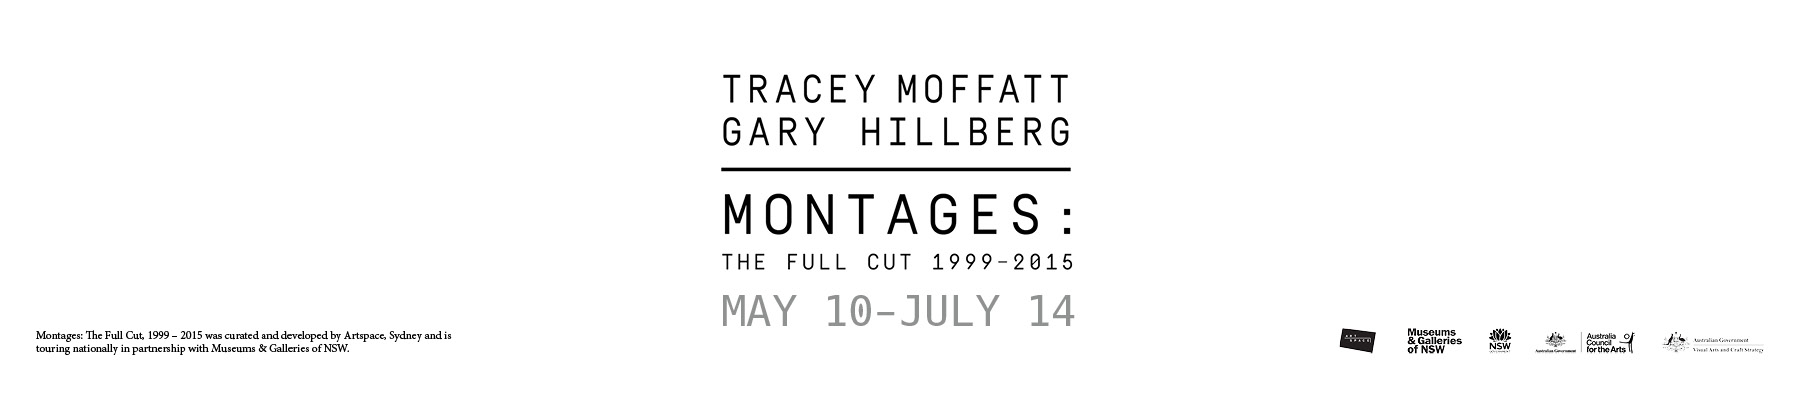 TRACEY-MOFFATT-AND-GARY-HILLBERG-Montages-The-final-cut-1999-2015.-Exhibition-10-May-14-July.-Click-to-read-full-details-about-exhibition-and-a-full-listing-of-sponsors